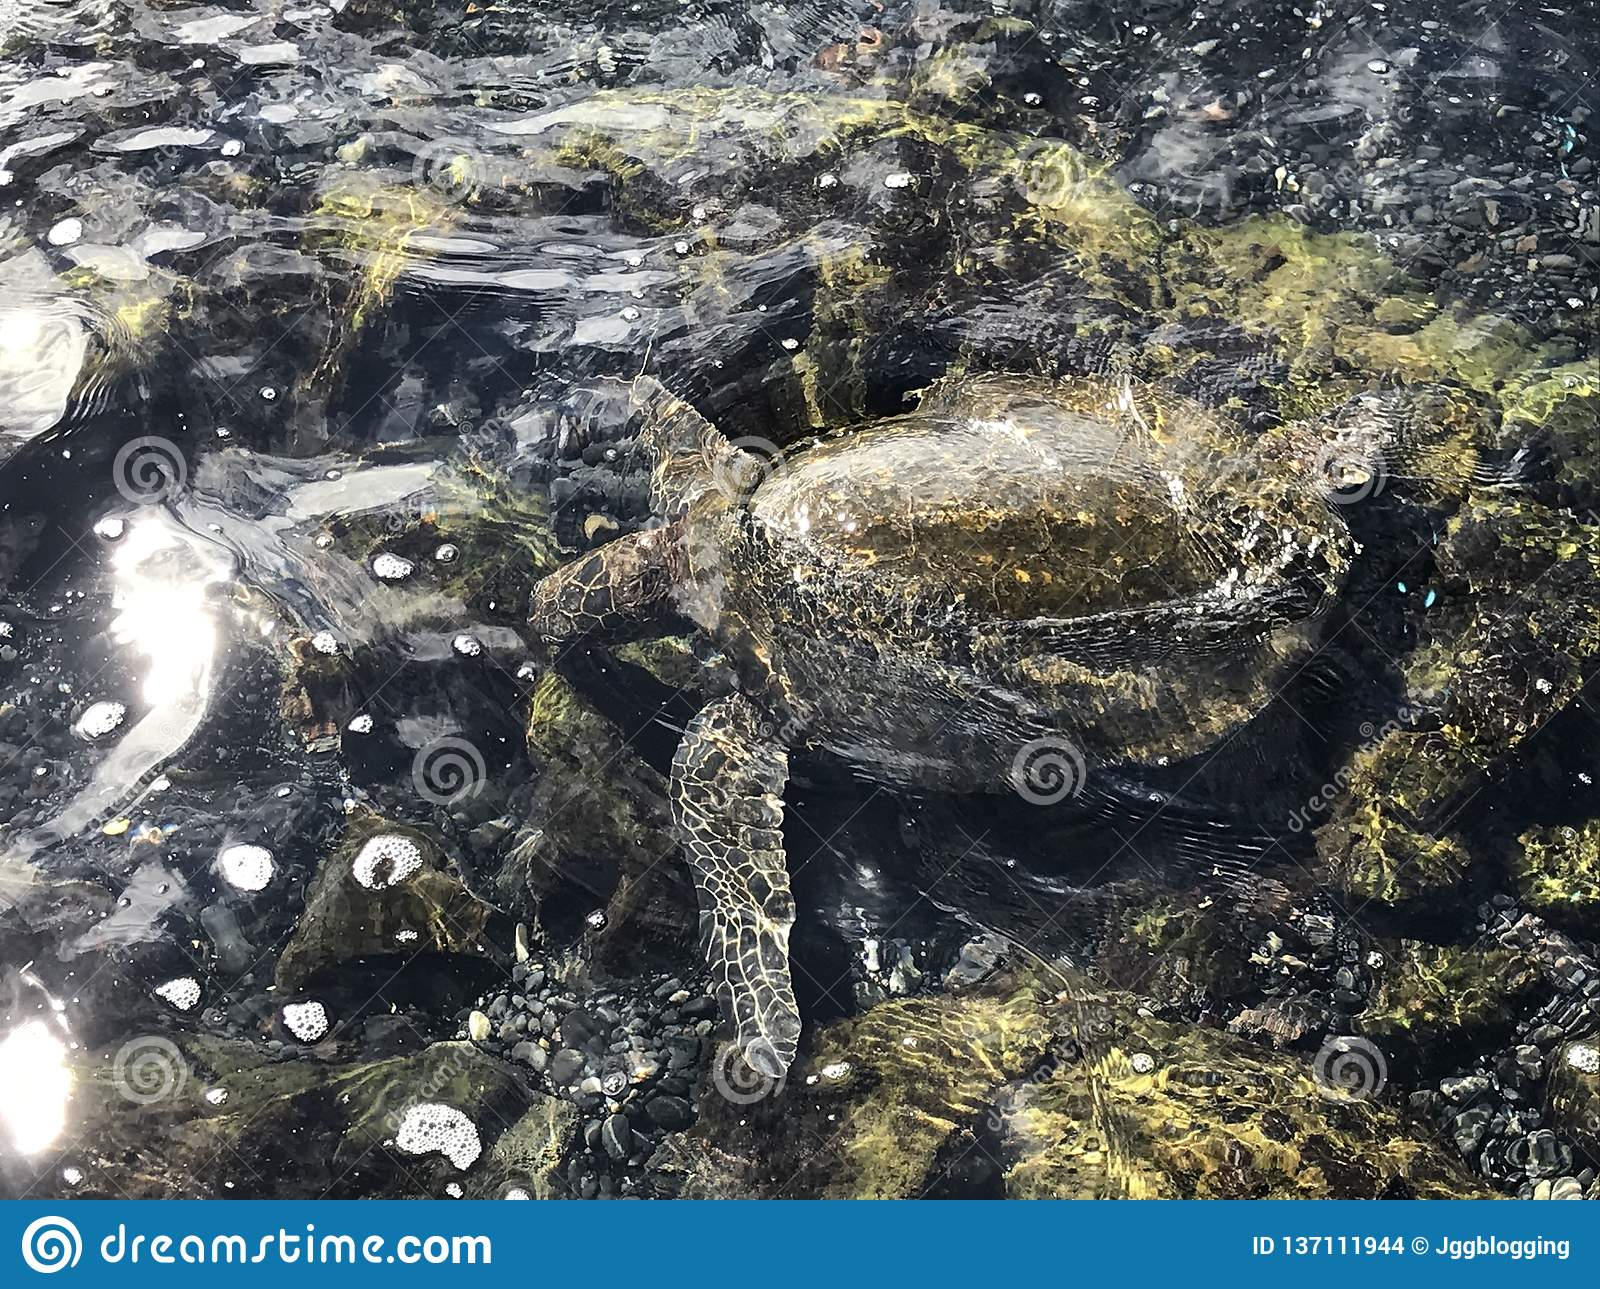 Sea turtle in water on the black sand beach in Maui